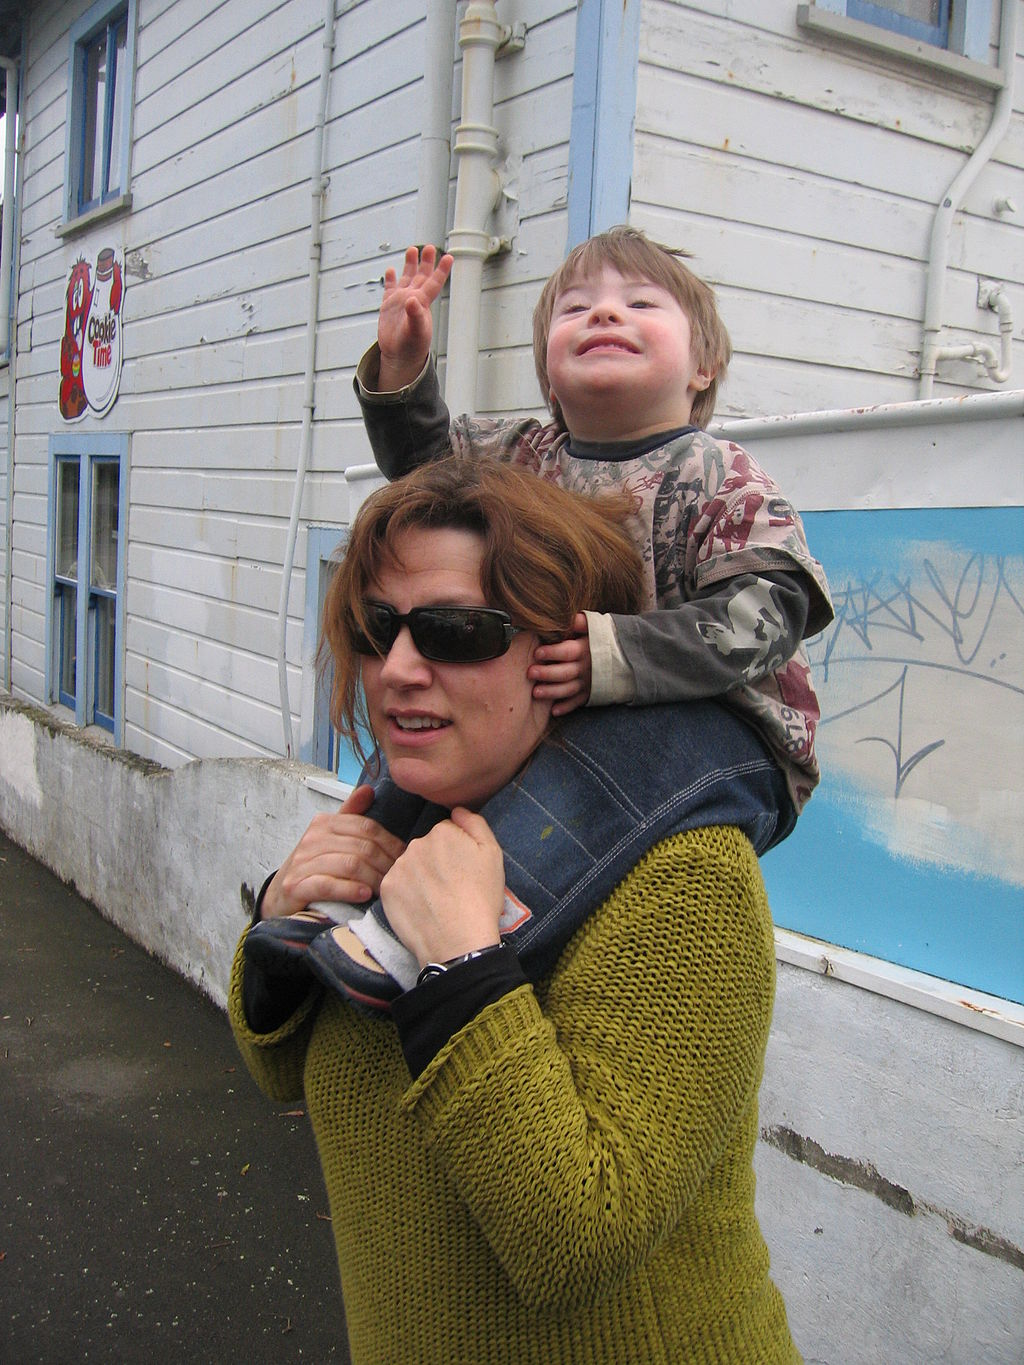 Boy on Woman's Shoulders